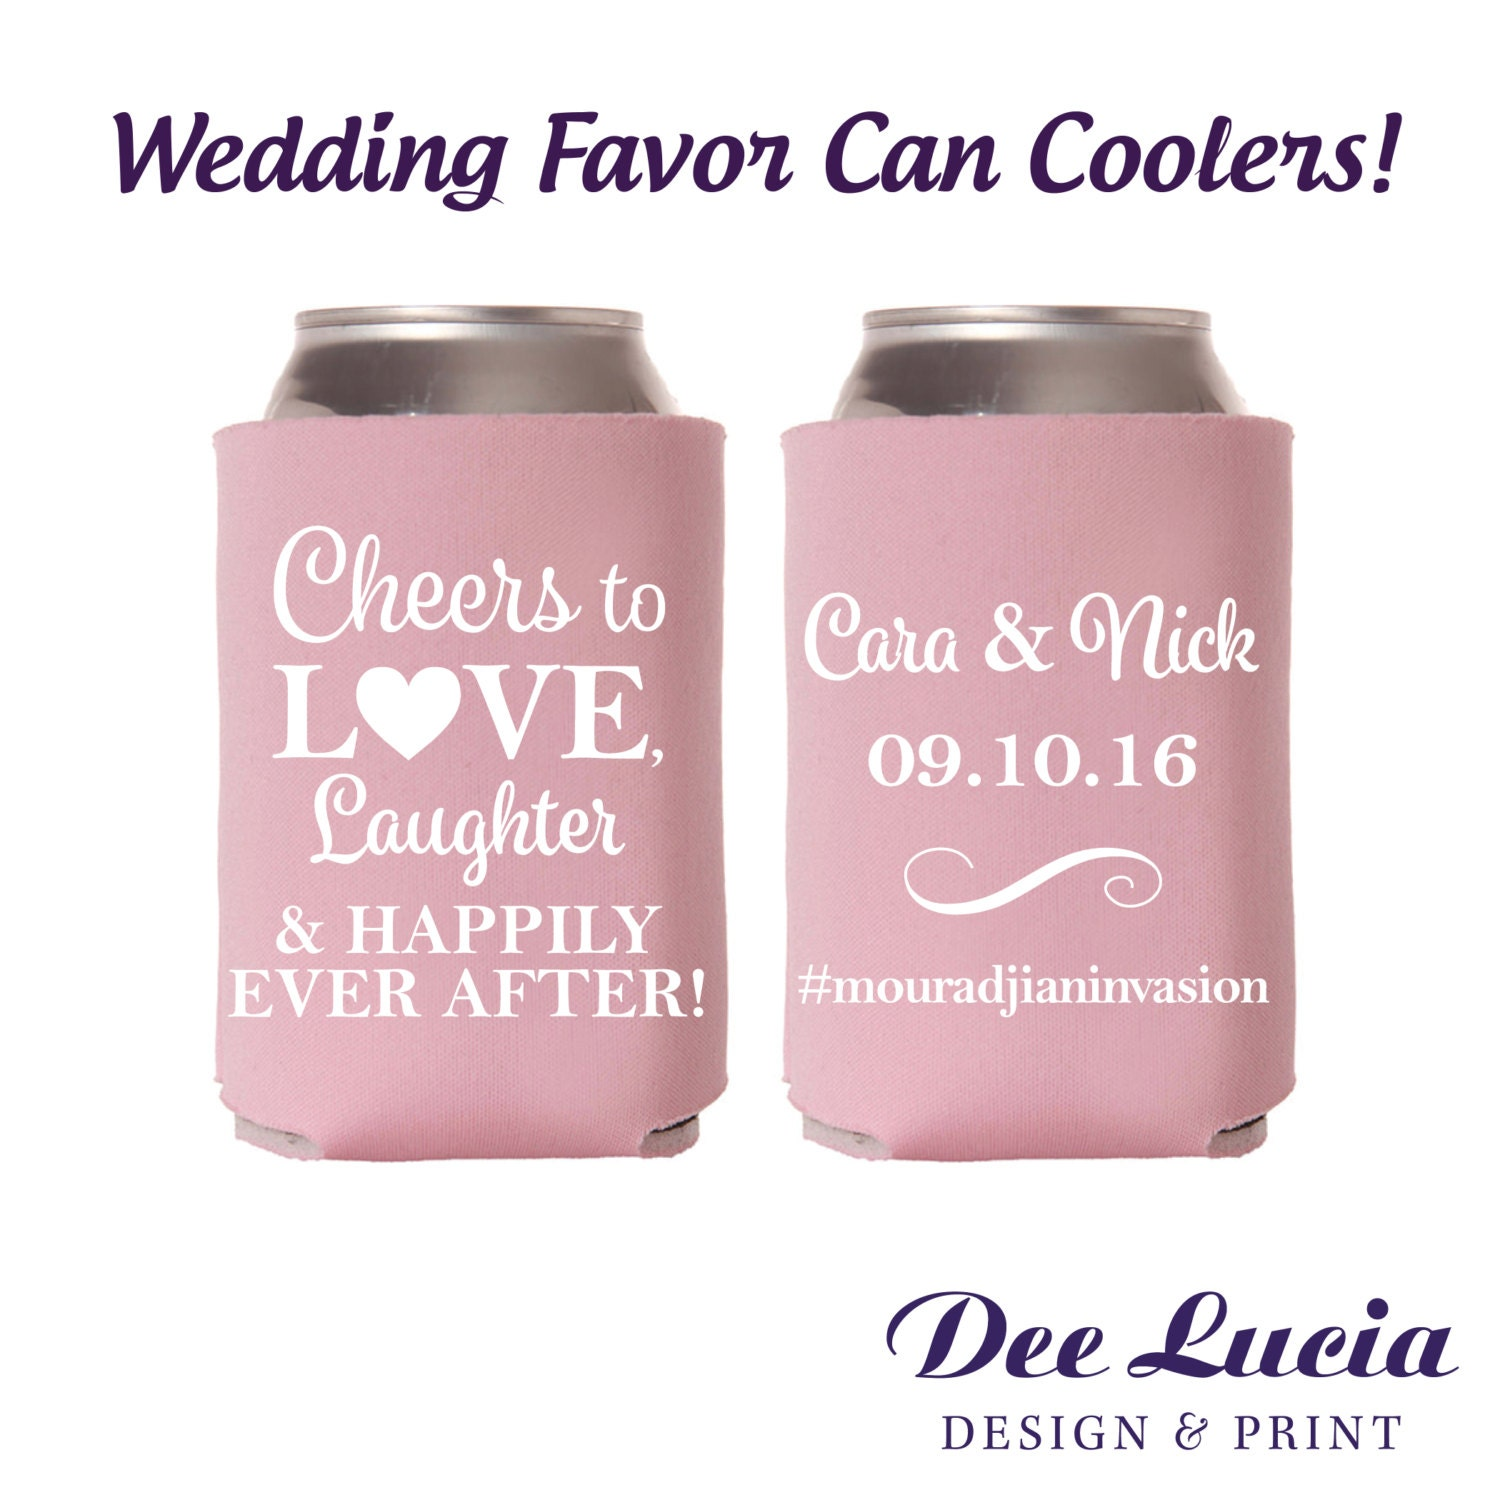 Cheers to love laughter and happily ever after Wedding favor